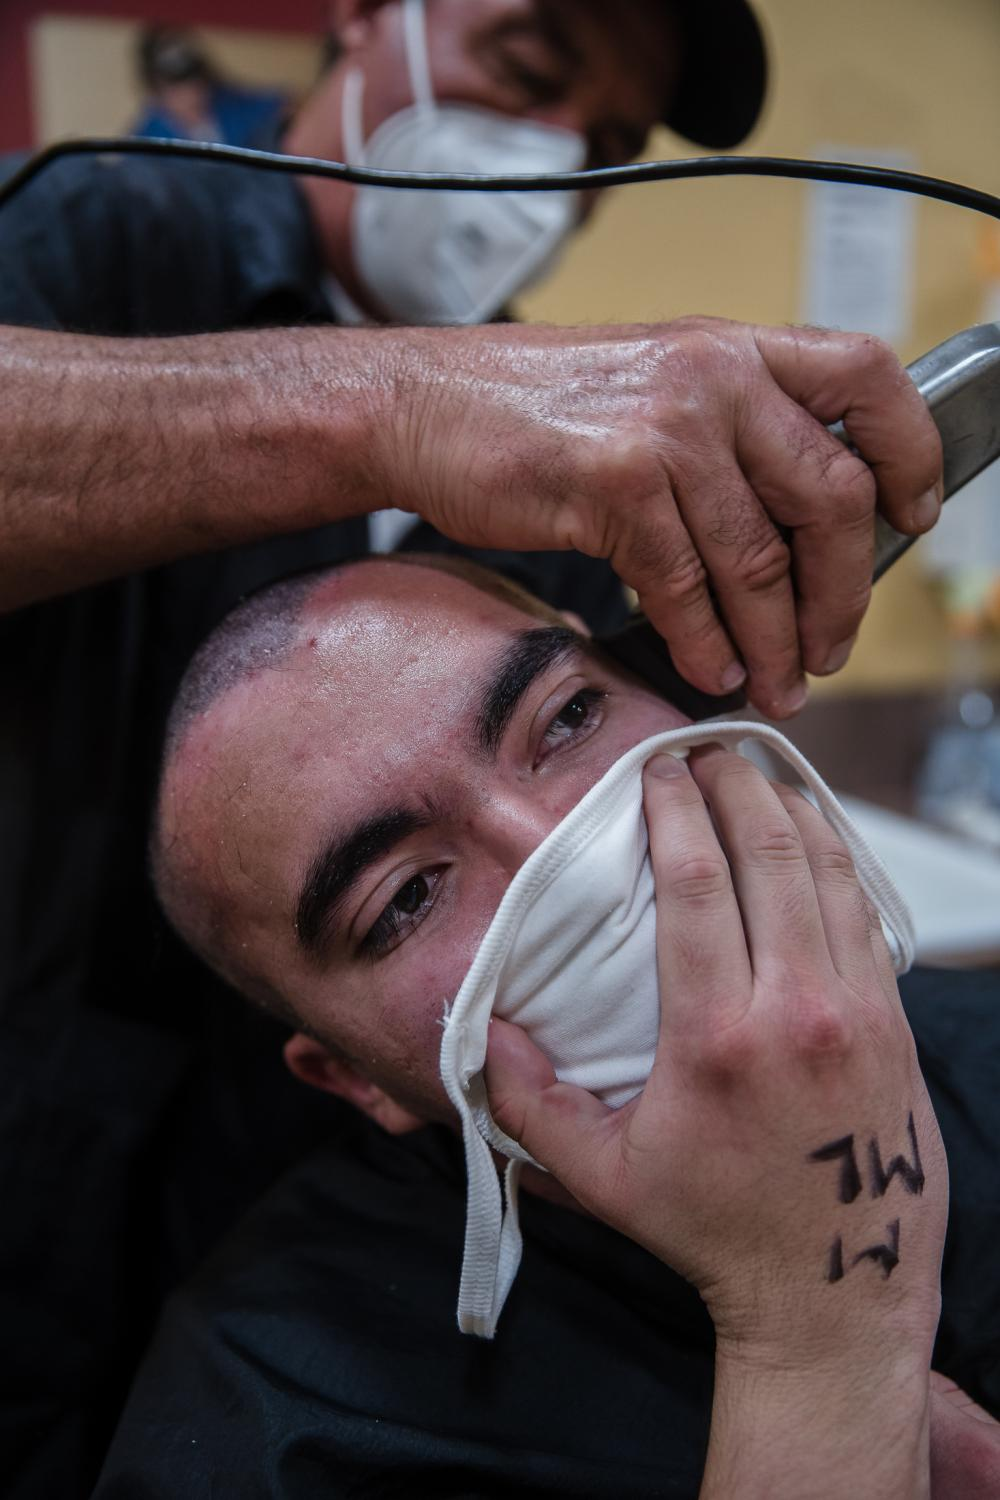 Gerard Ortiz, 24 years old from Pueblo, Colorado gets his head shaved at the barber shop after arriving at the Marine Corp Recruit Depot in San Diego, California on October 8, 2020. Ortiz feels the two weeks in quarantine have helped him get ready to be in the right mindset.